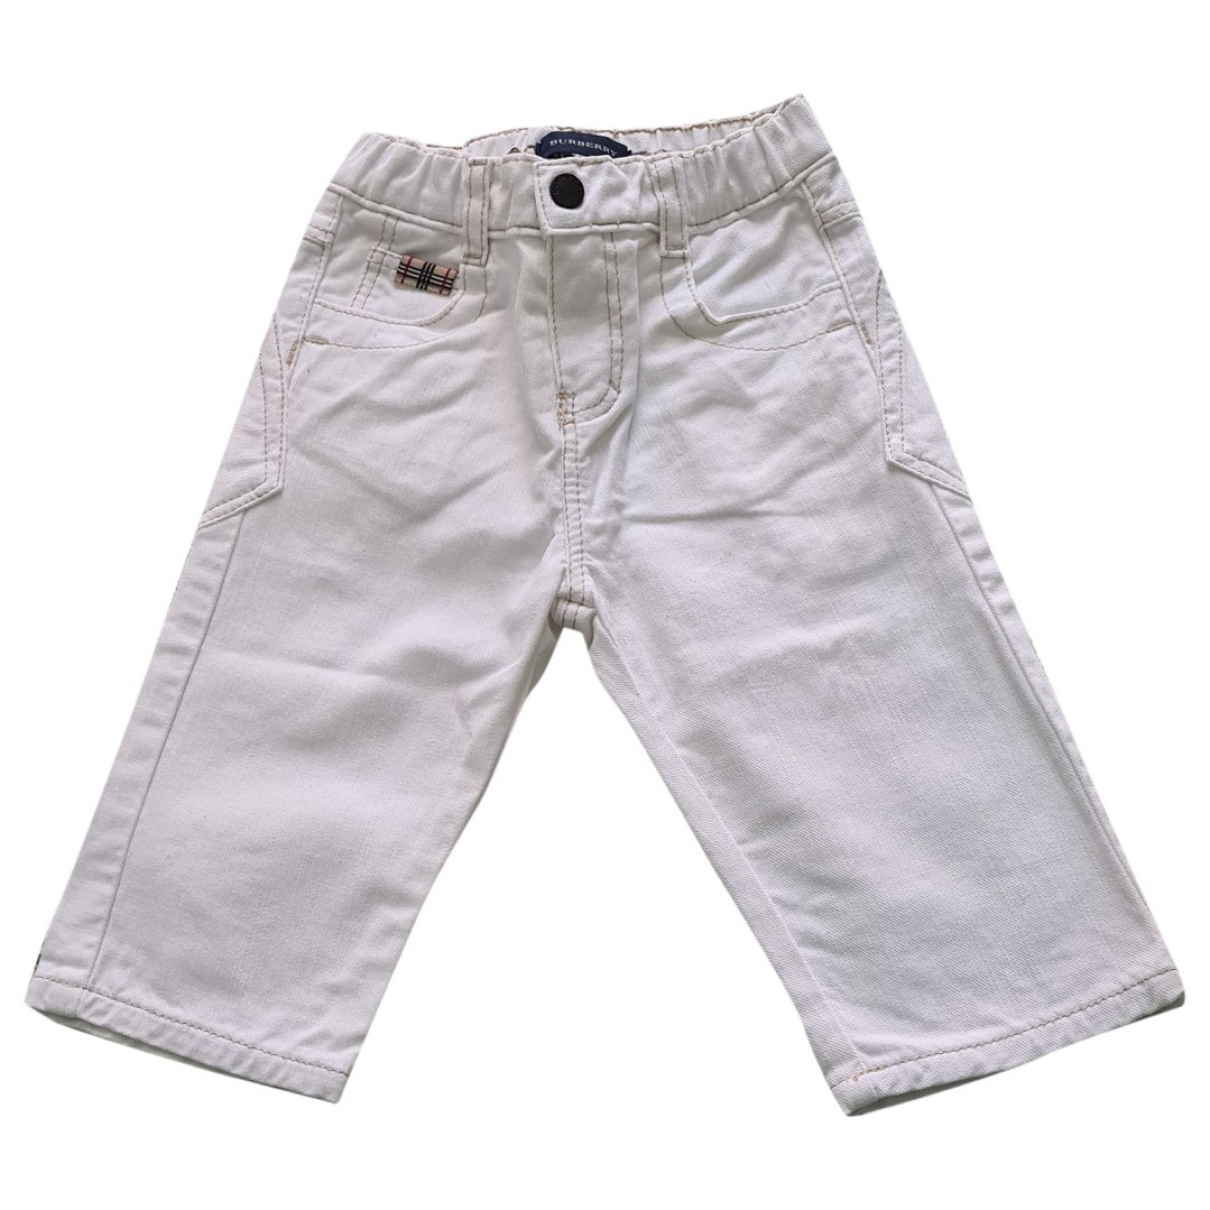 Burberry \N White Denim - Jeans Trousers for Kids 9 months - up to 71cm FR